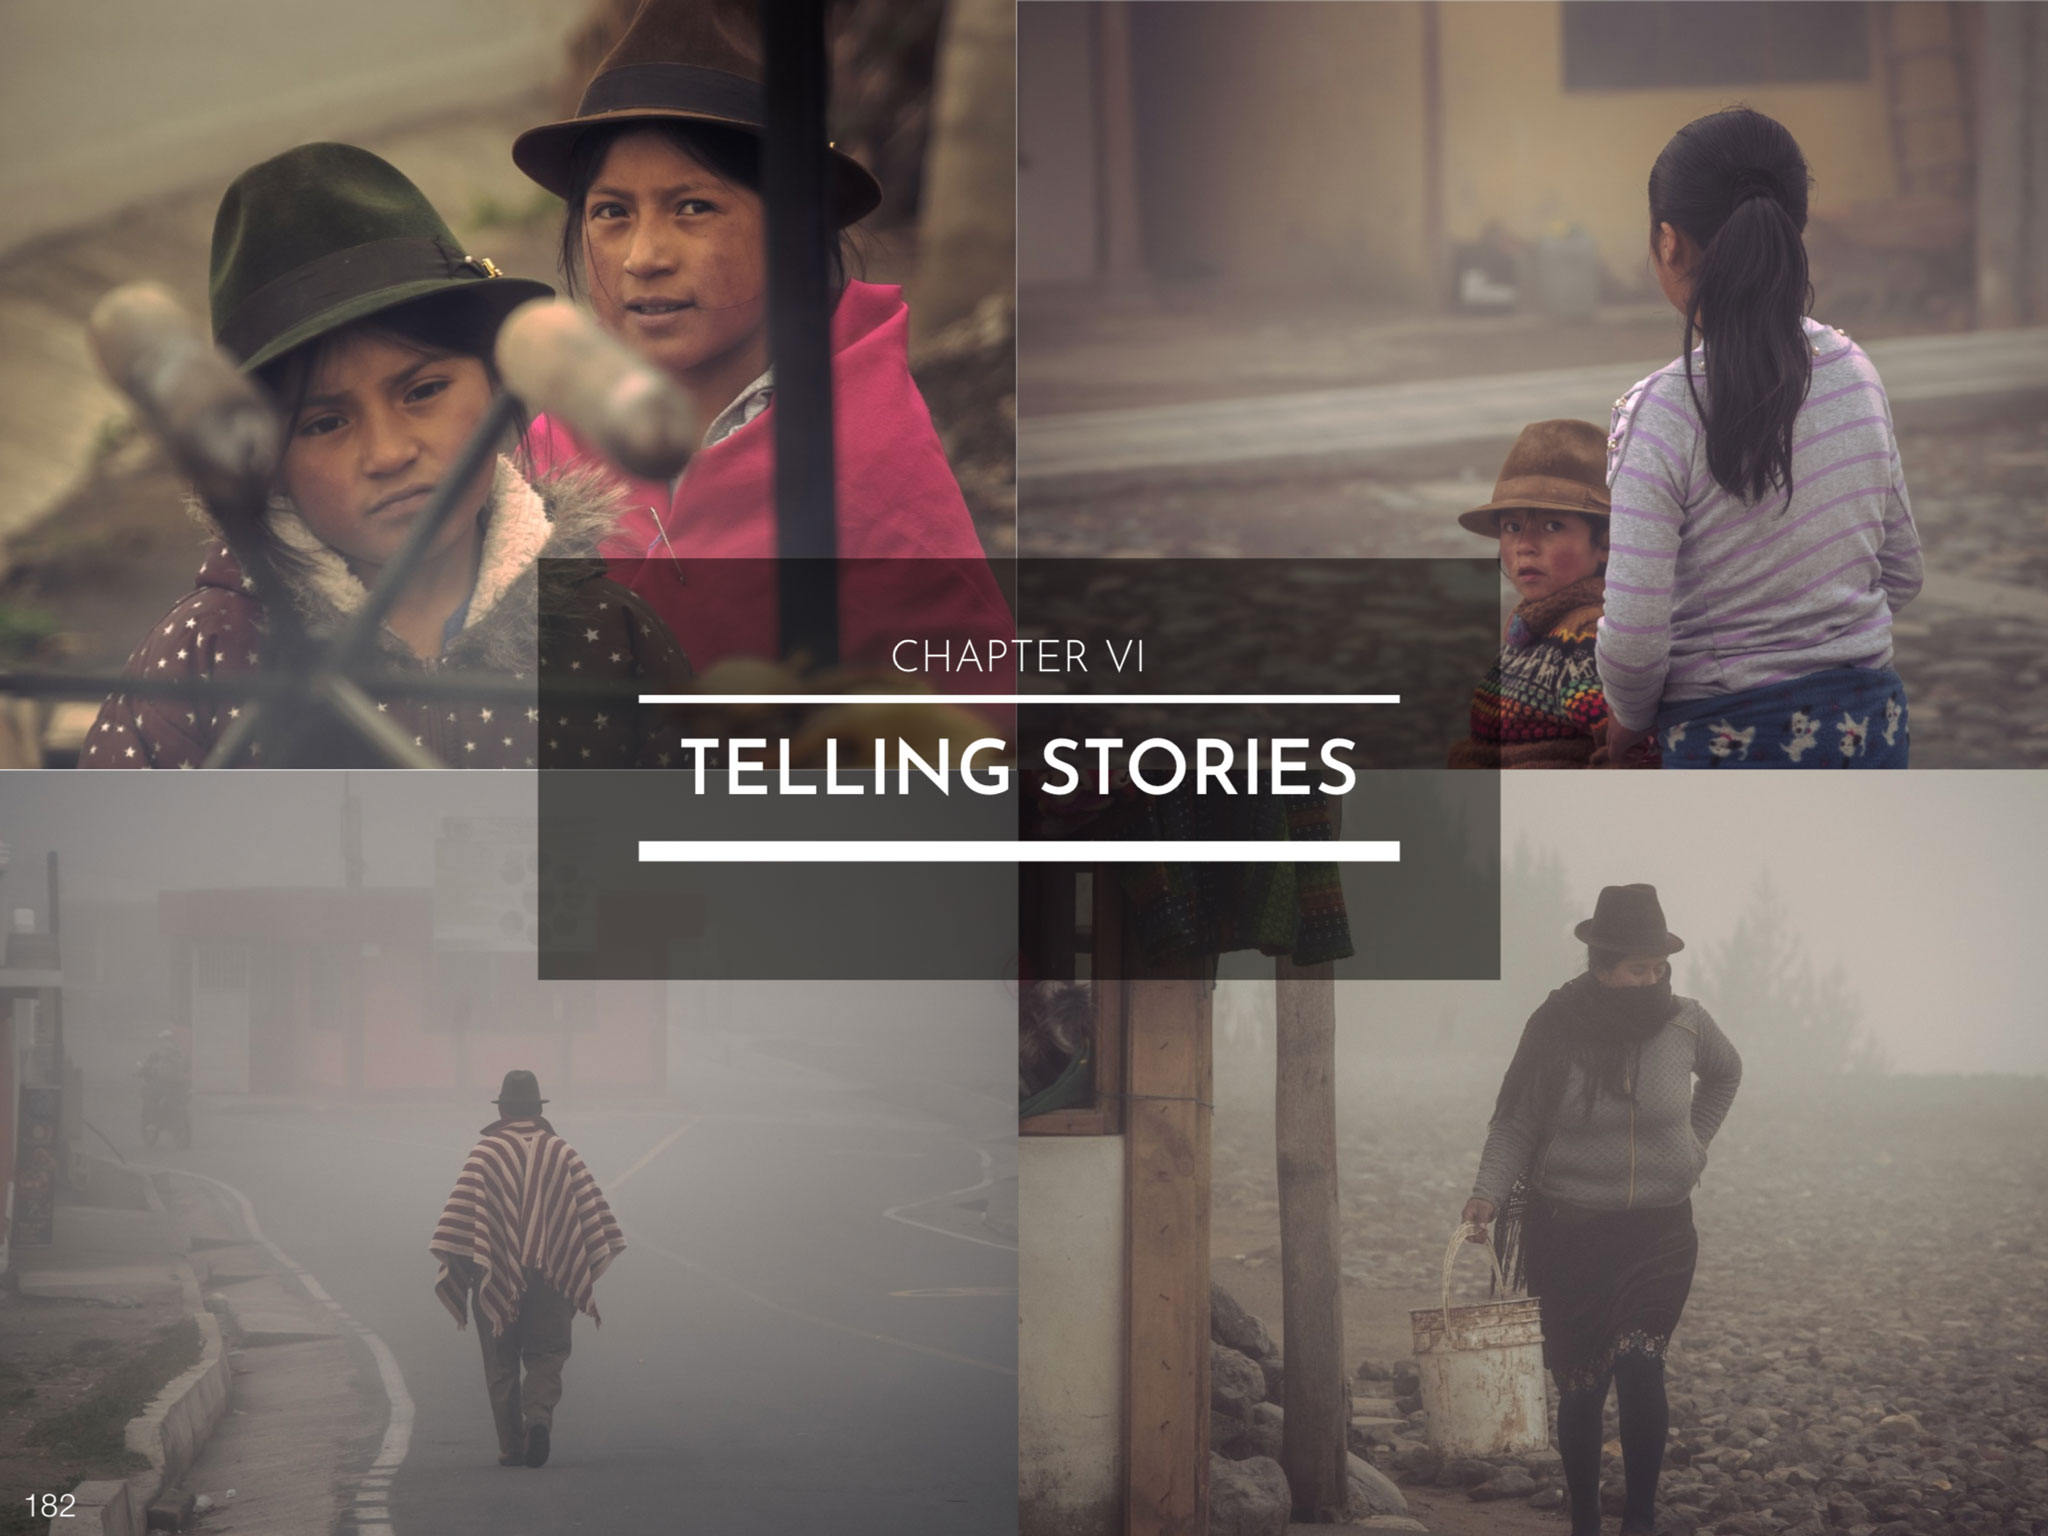 CHAPTER VI - STORY-TELLING